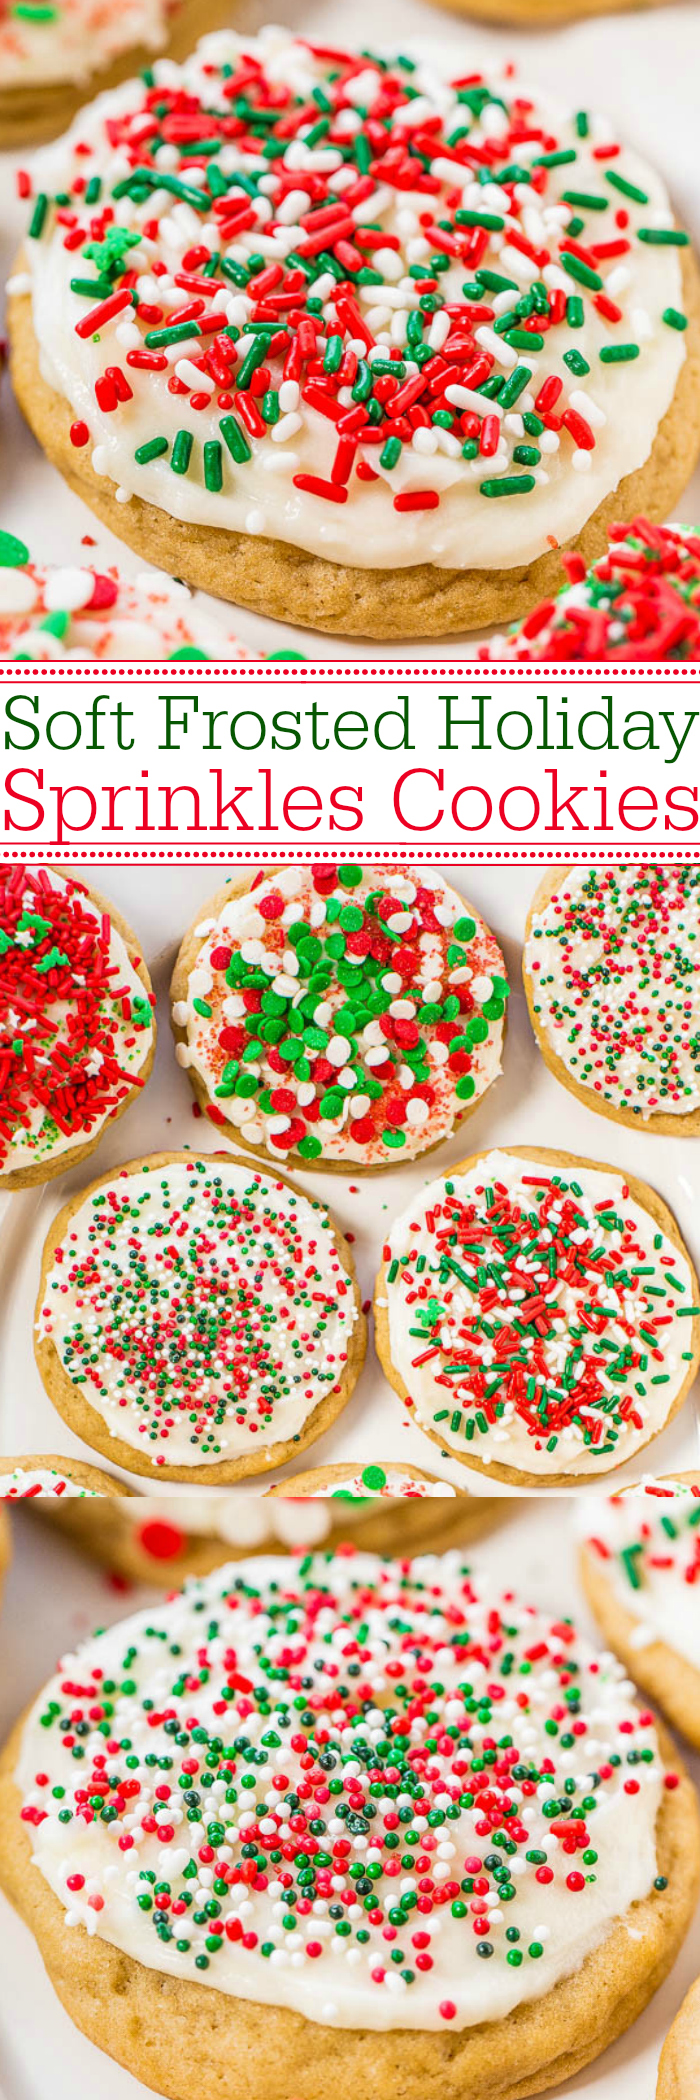 Soft Frosted Sprinkles Cookies — Holiday sugar cookies topped with cream cheese frosting and loaded with sprinkles! Easy, no-roll cookies that everyone goes crazy for!